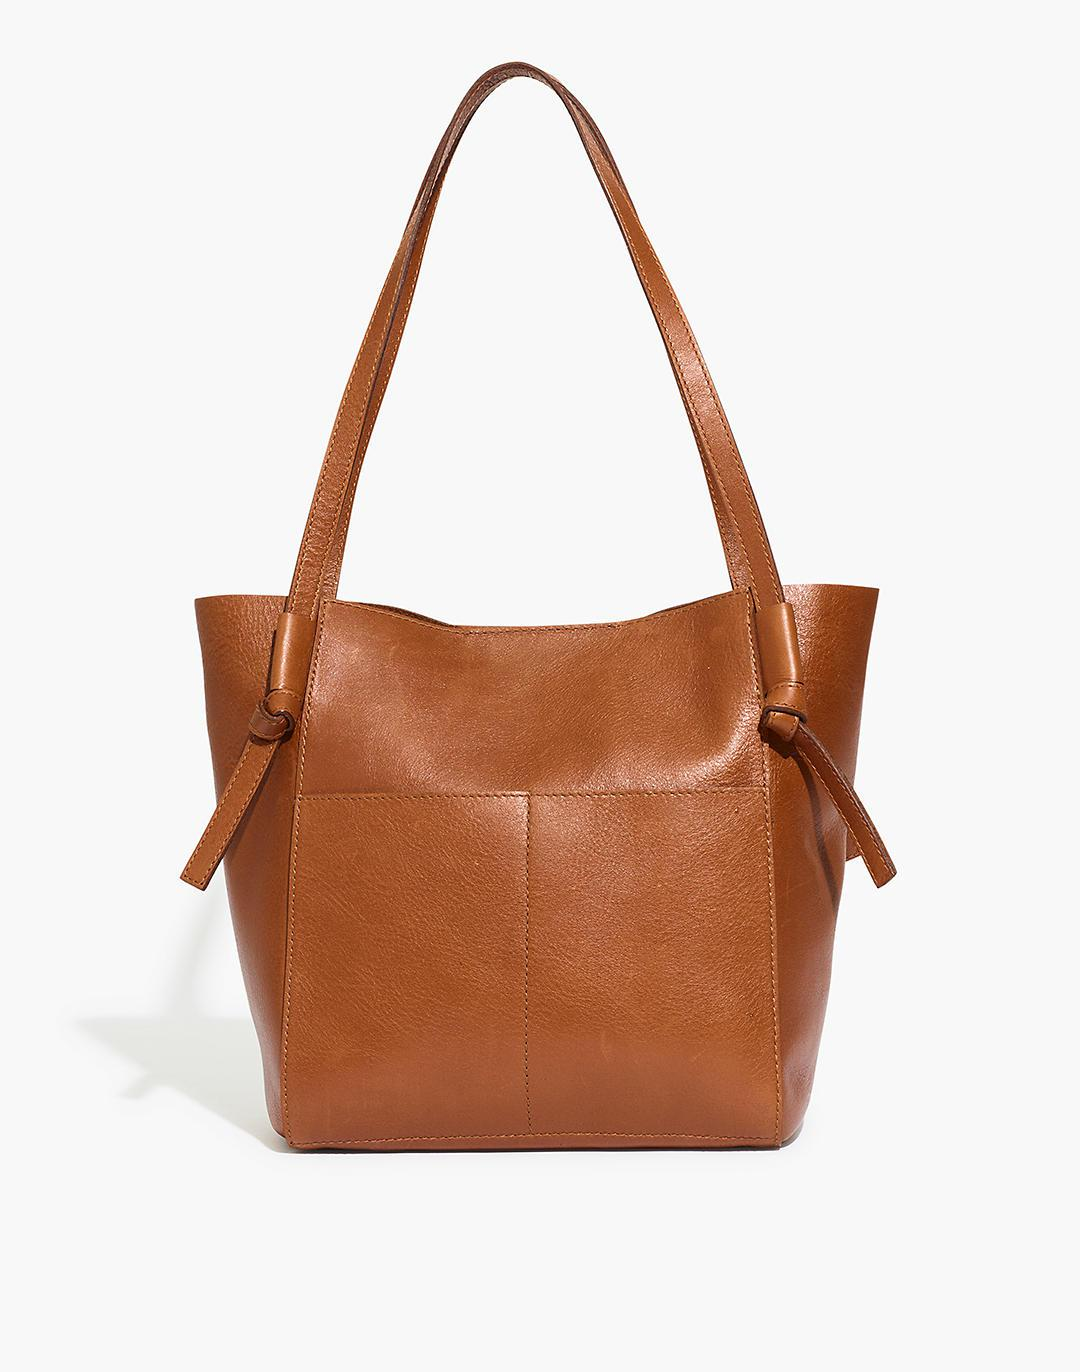 The Knotted Tote Bag